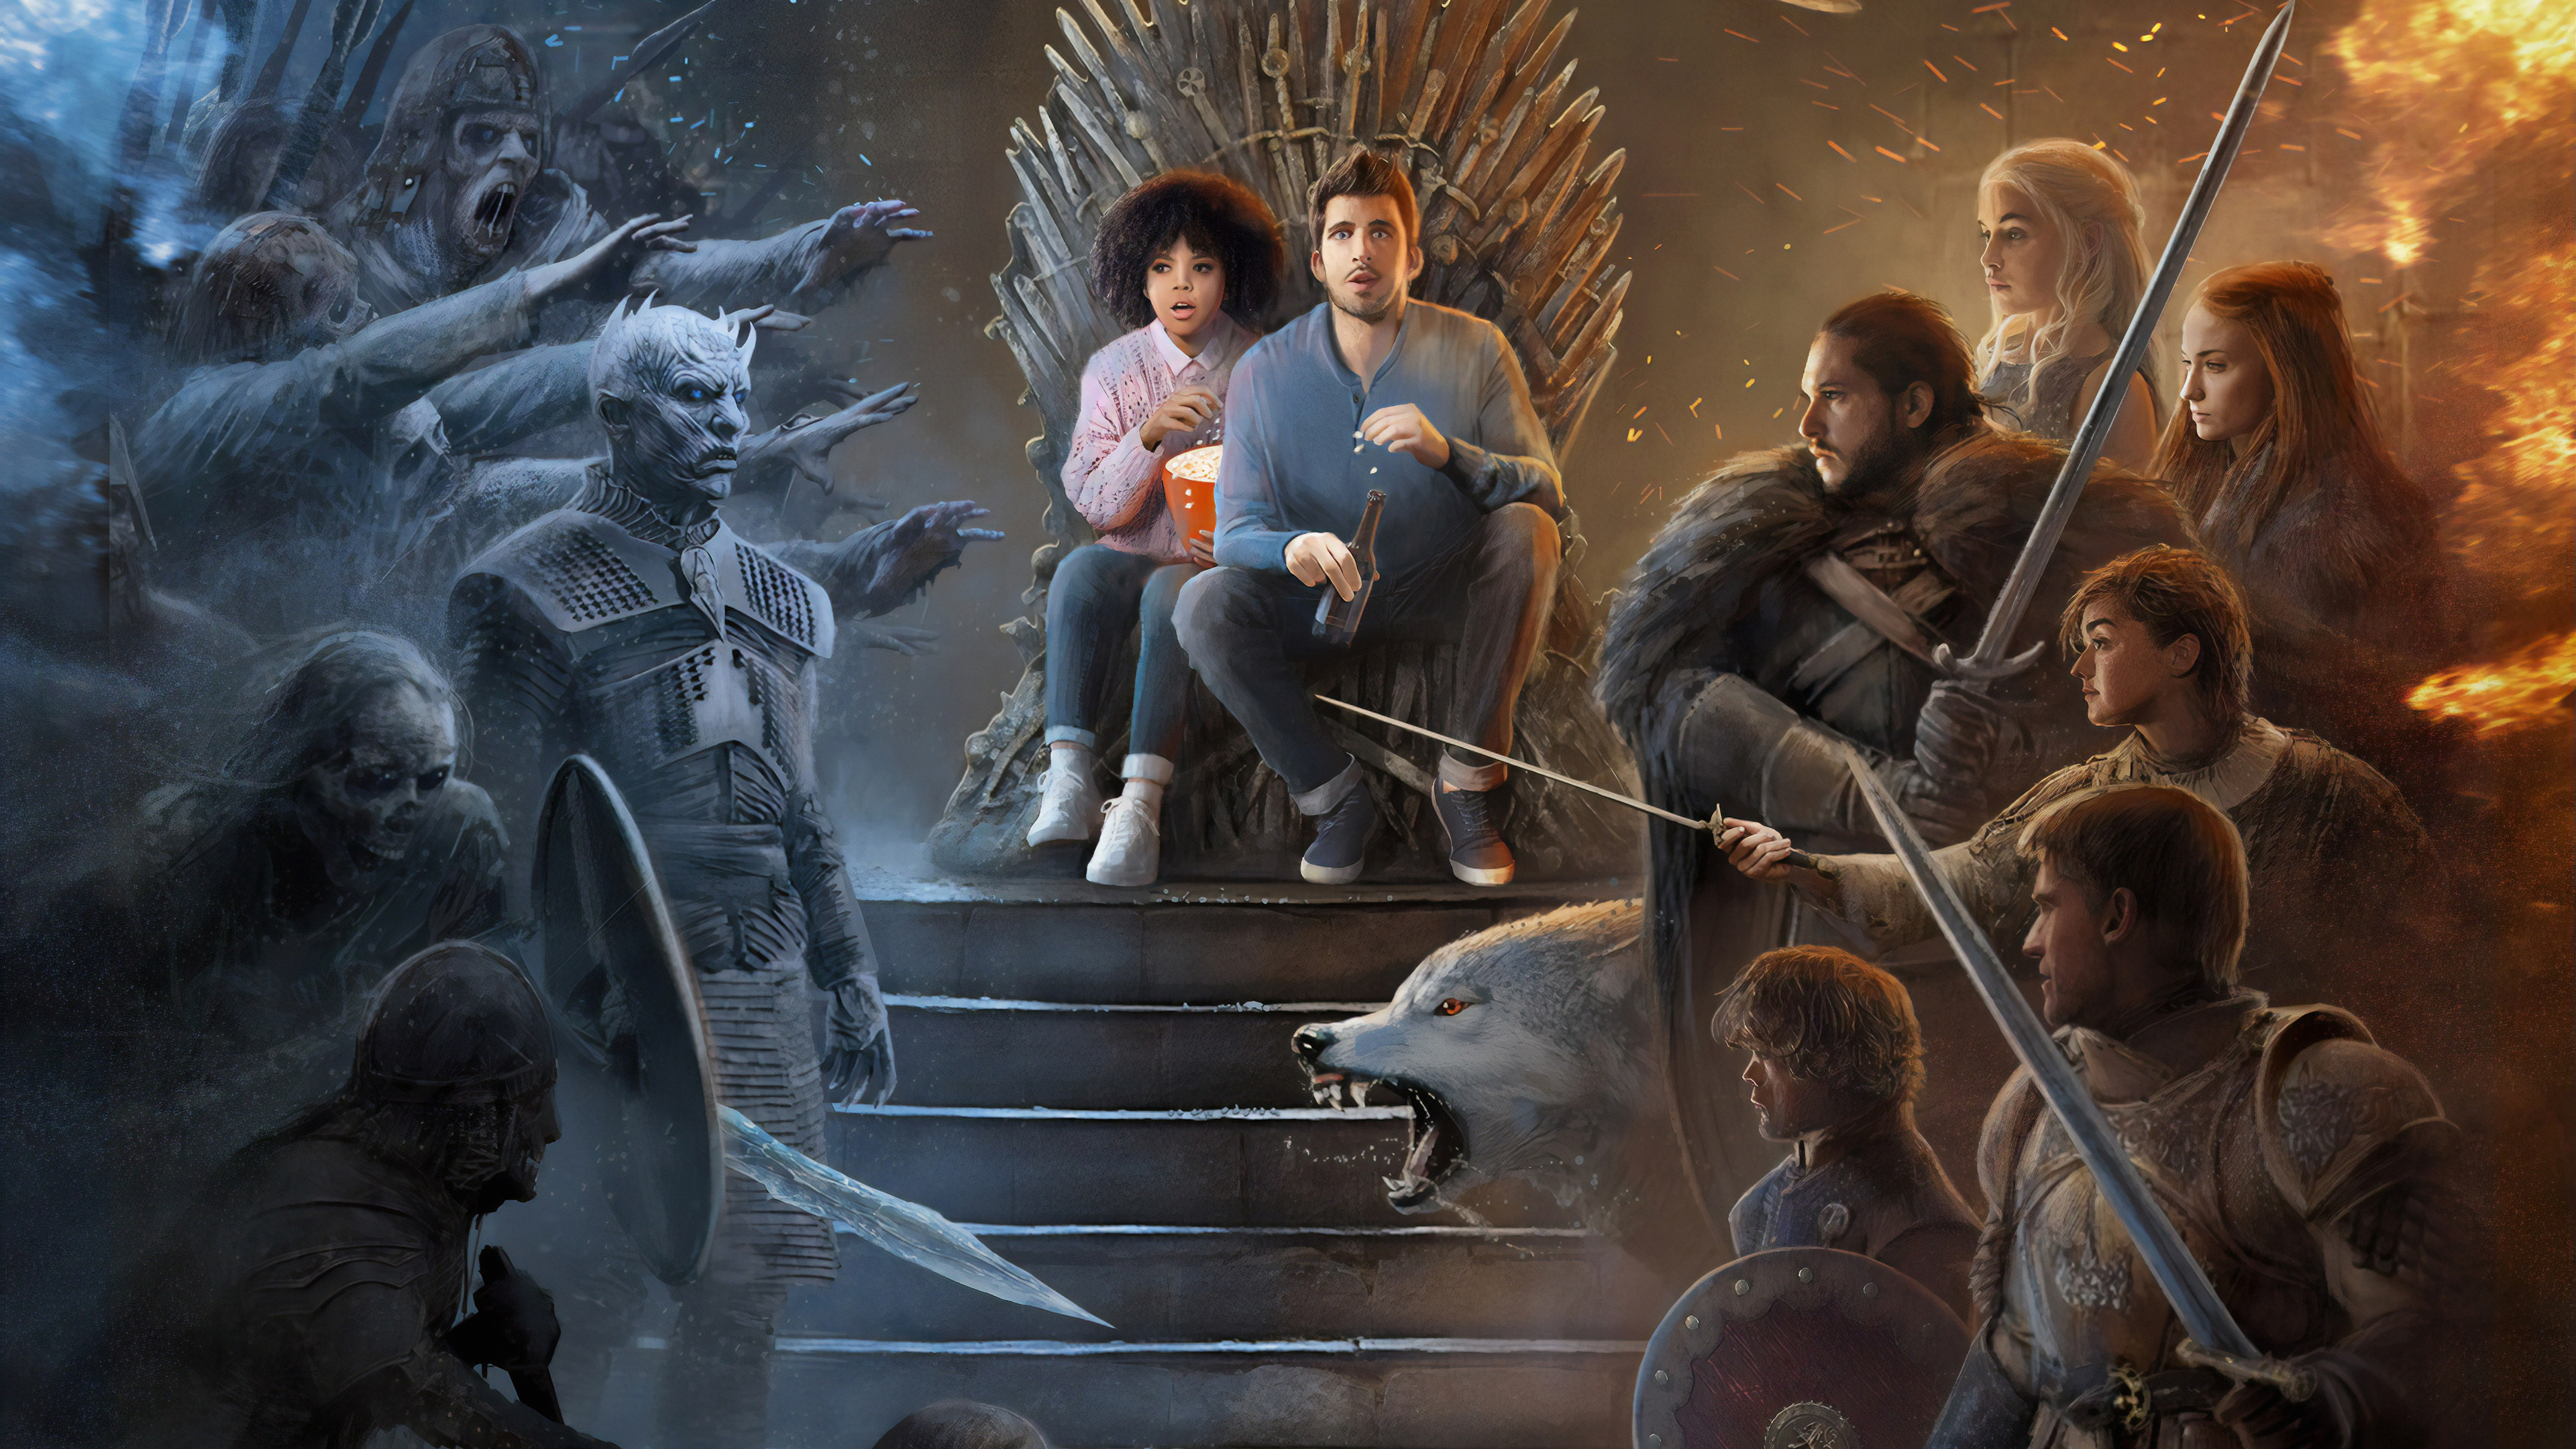 Game Of Thrones Fan Artwork Hd Tv Shows 4k Wallpapers Images